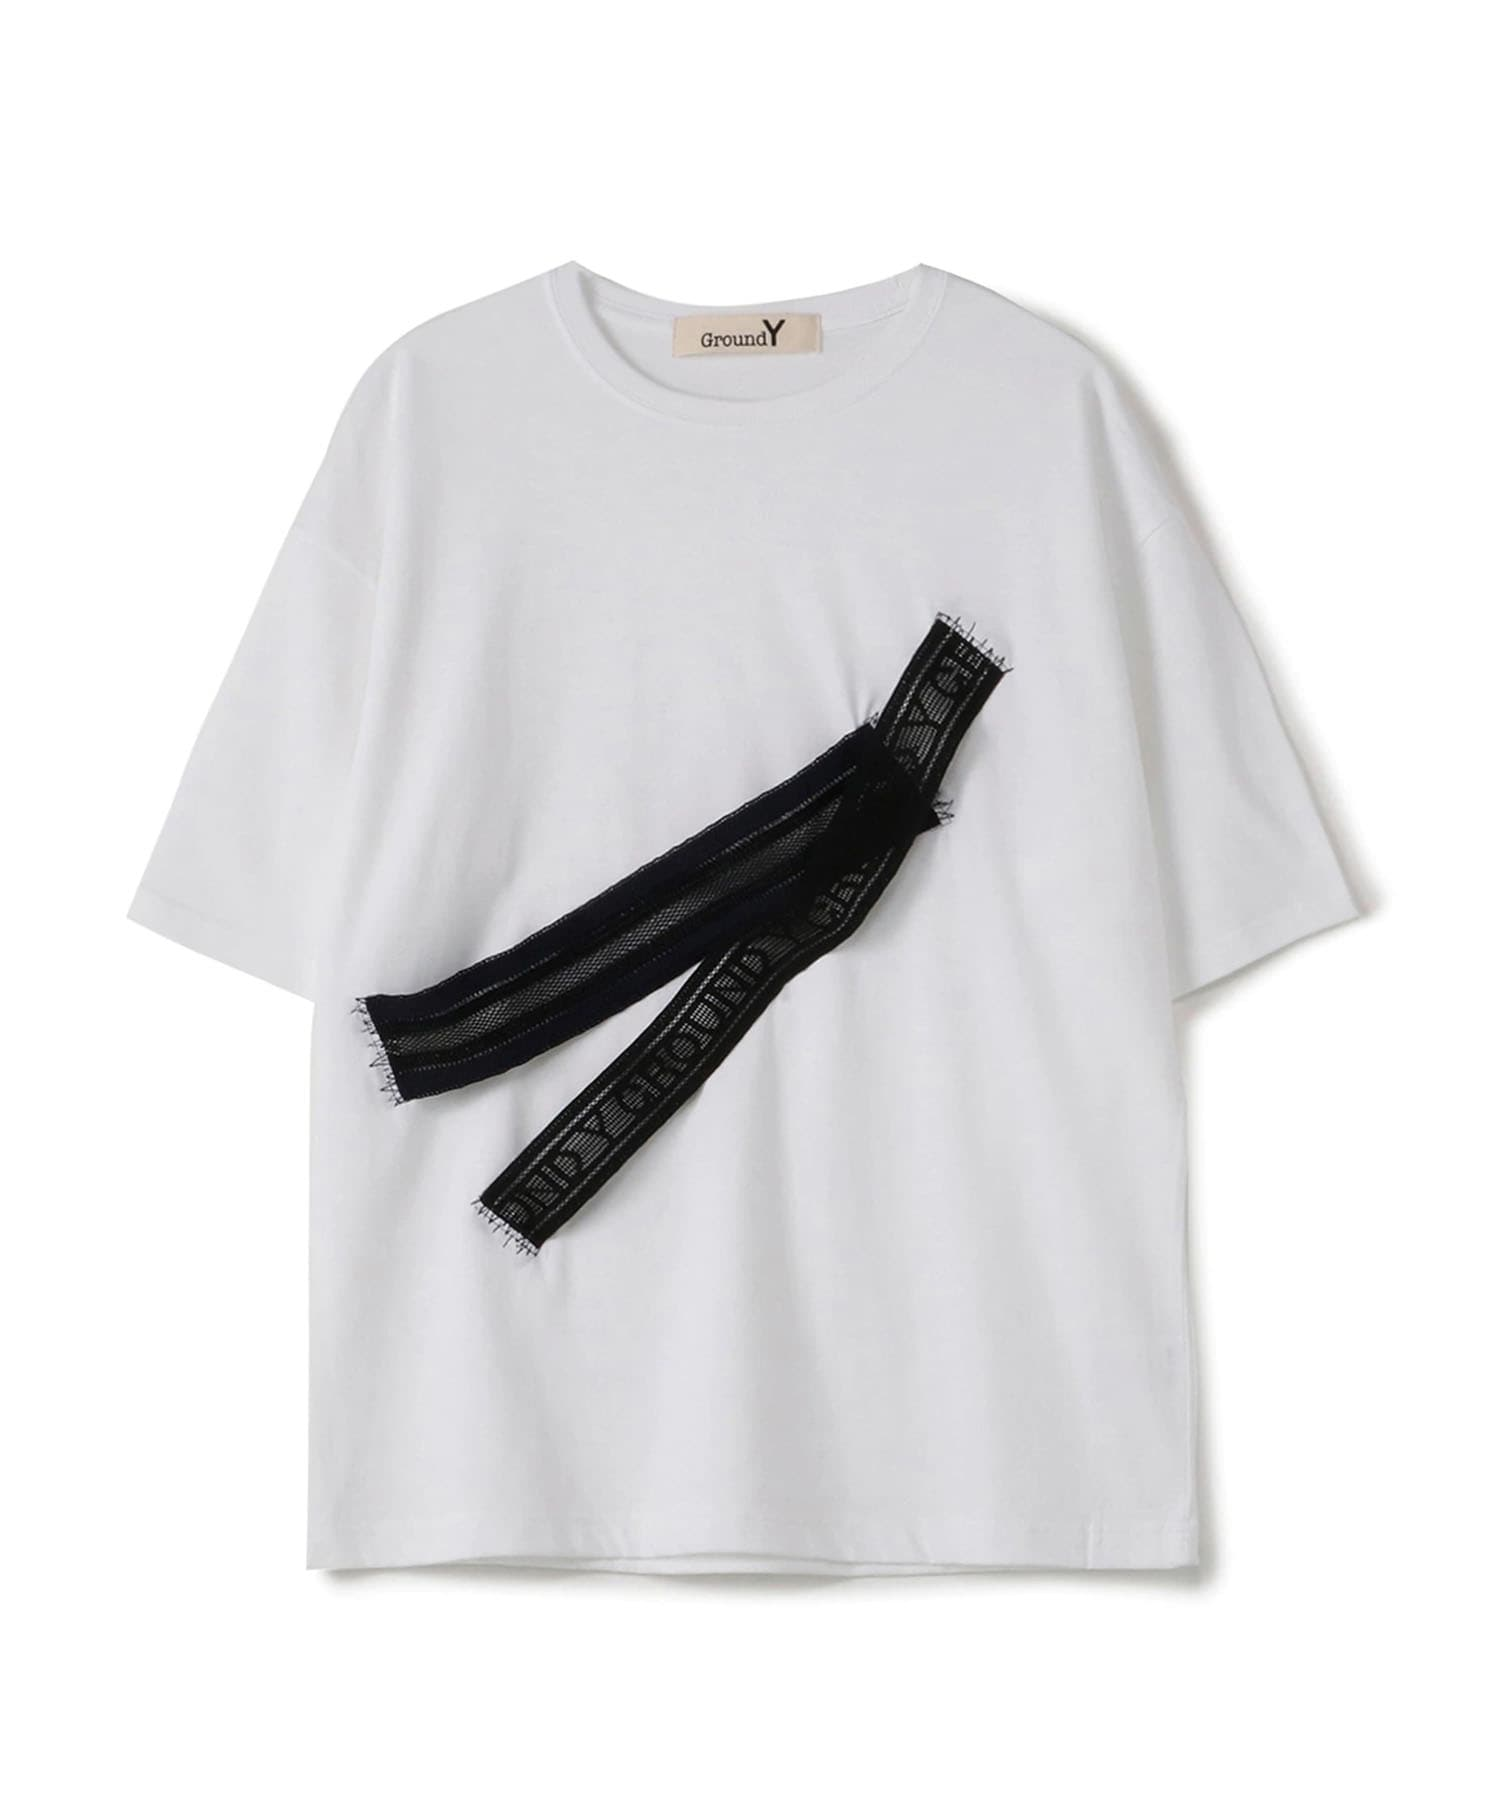 GN-T43-070 S/S TEE GroundY